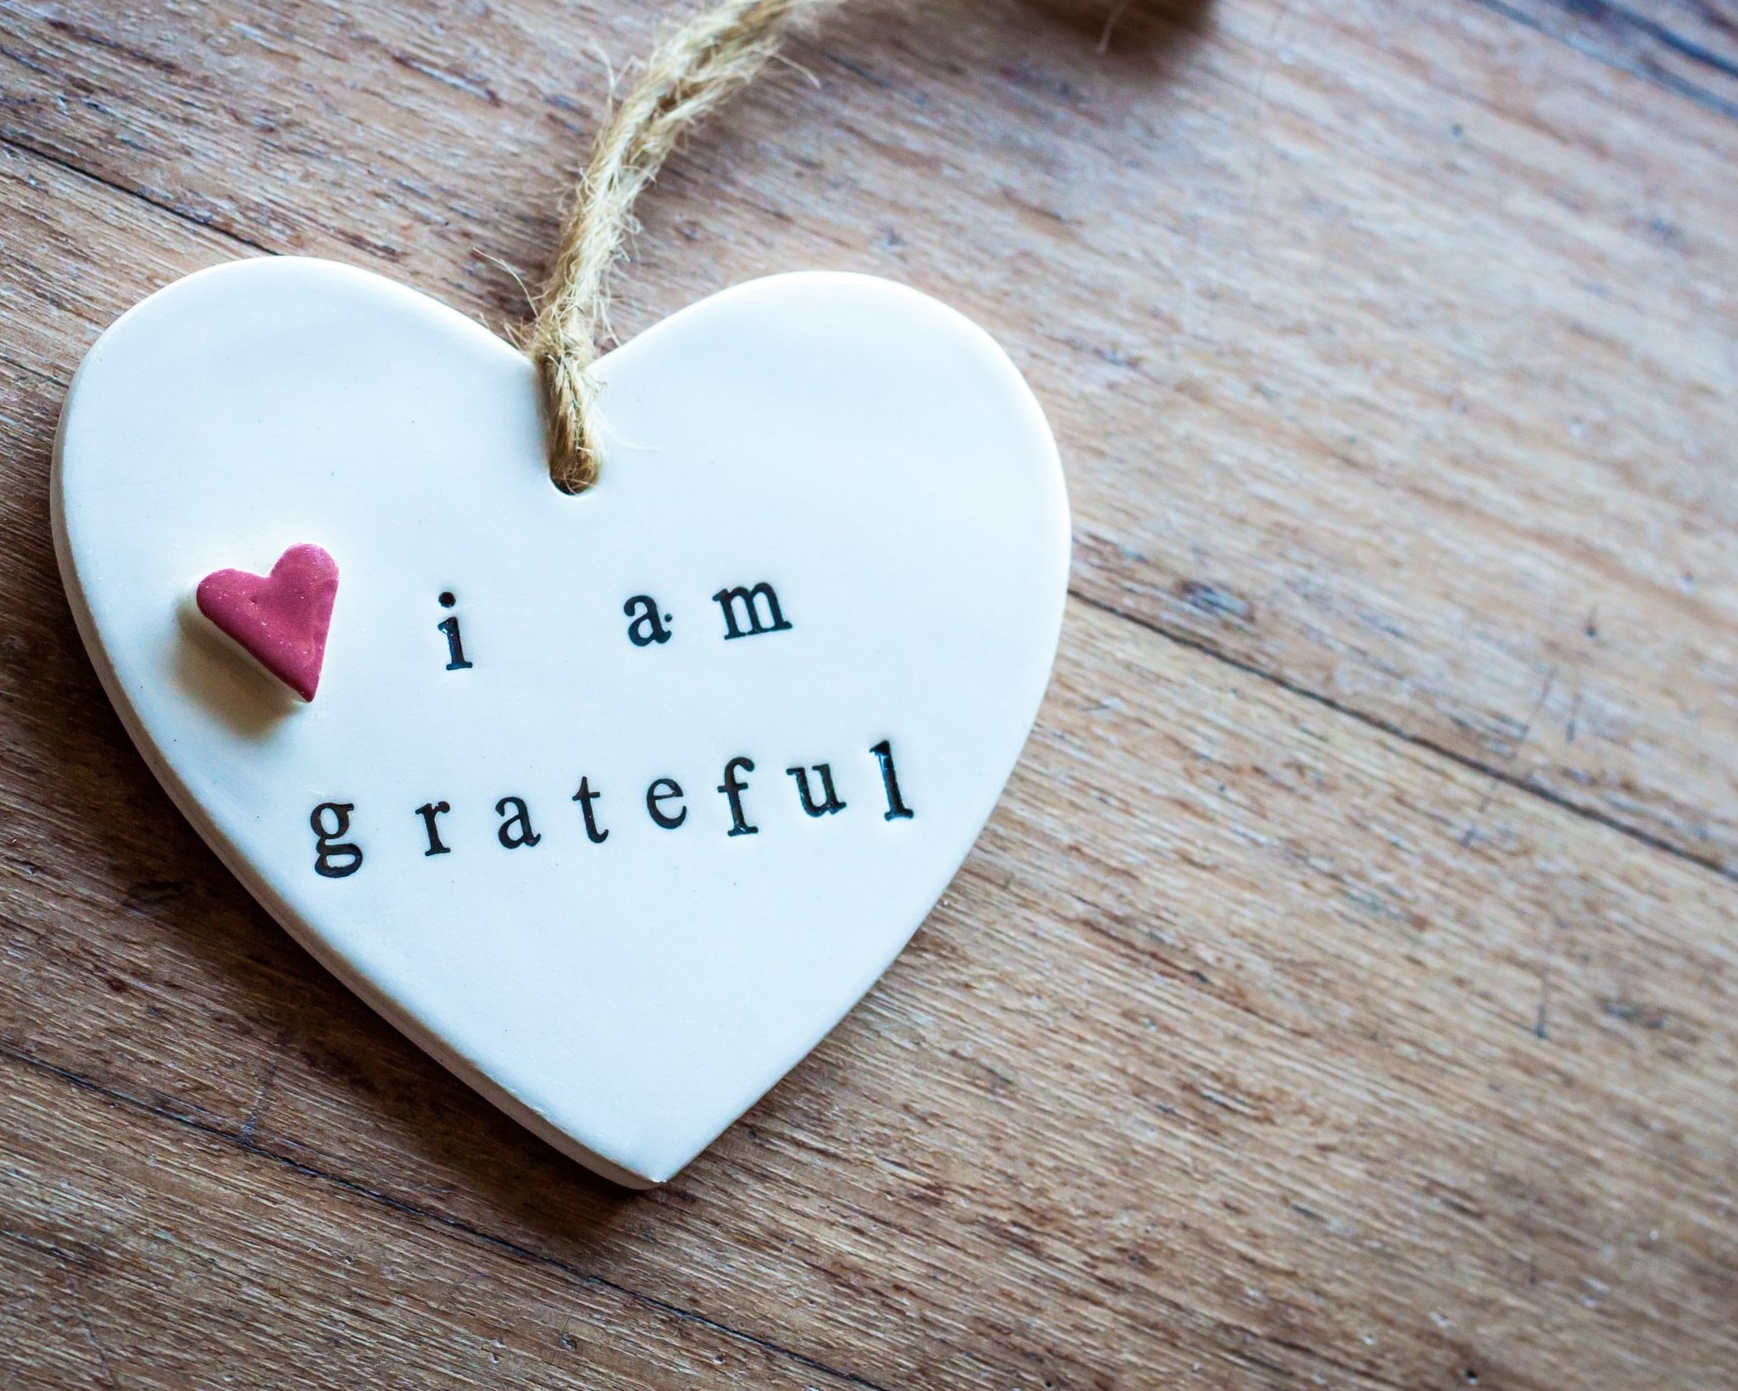 How does it feel to give and receive gratitude? -